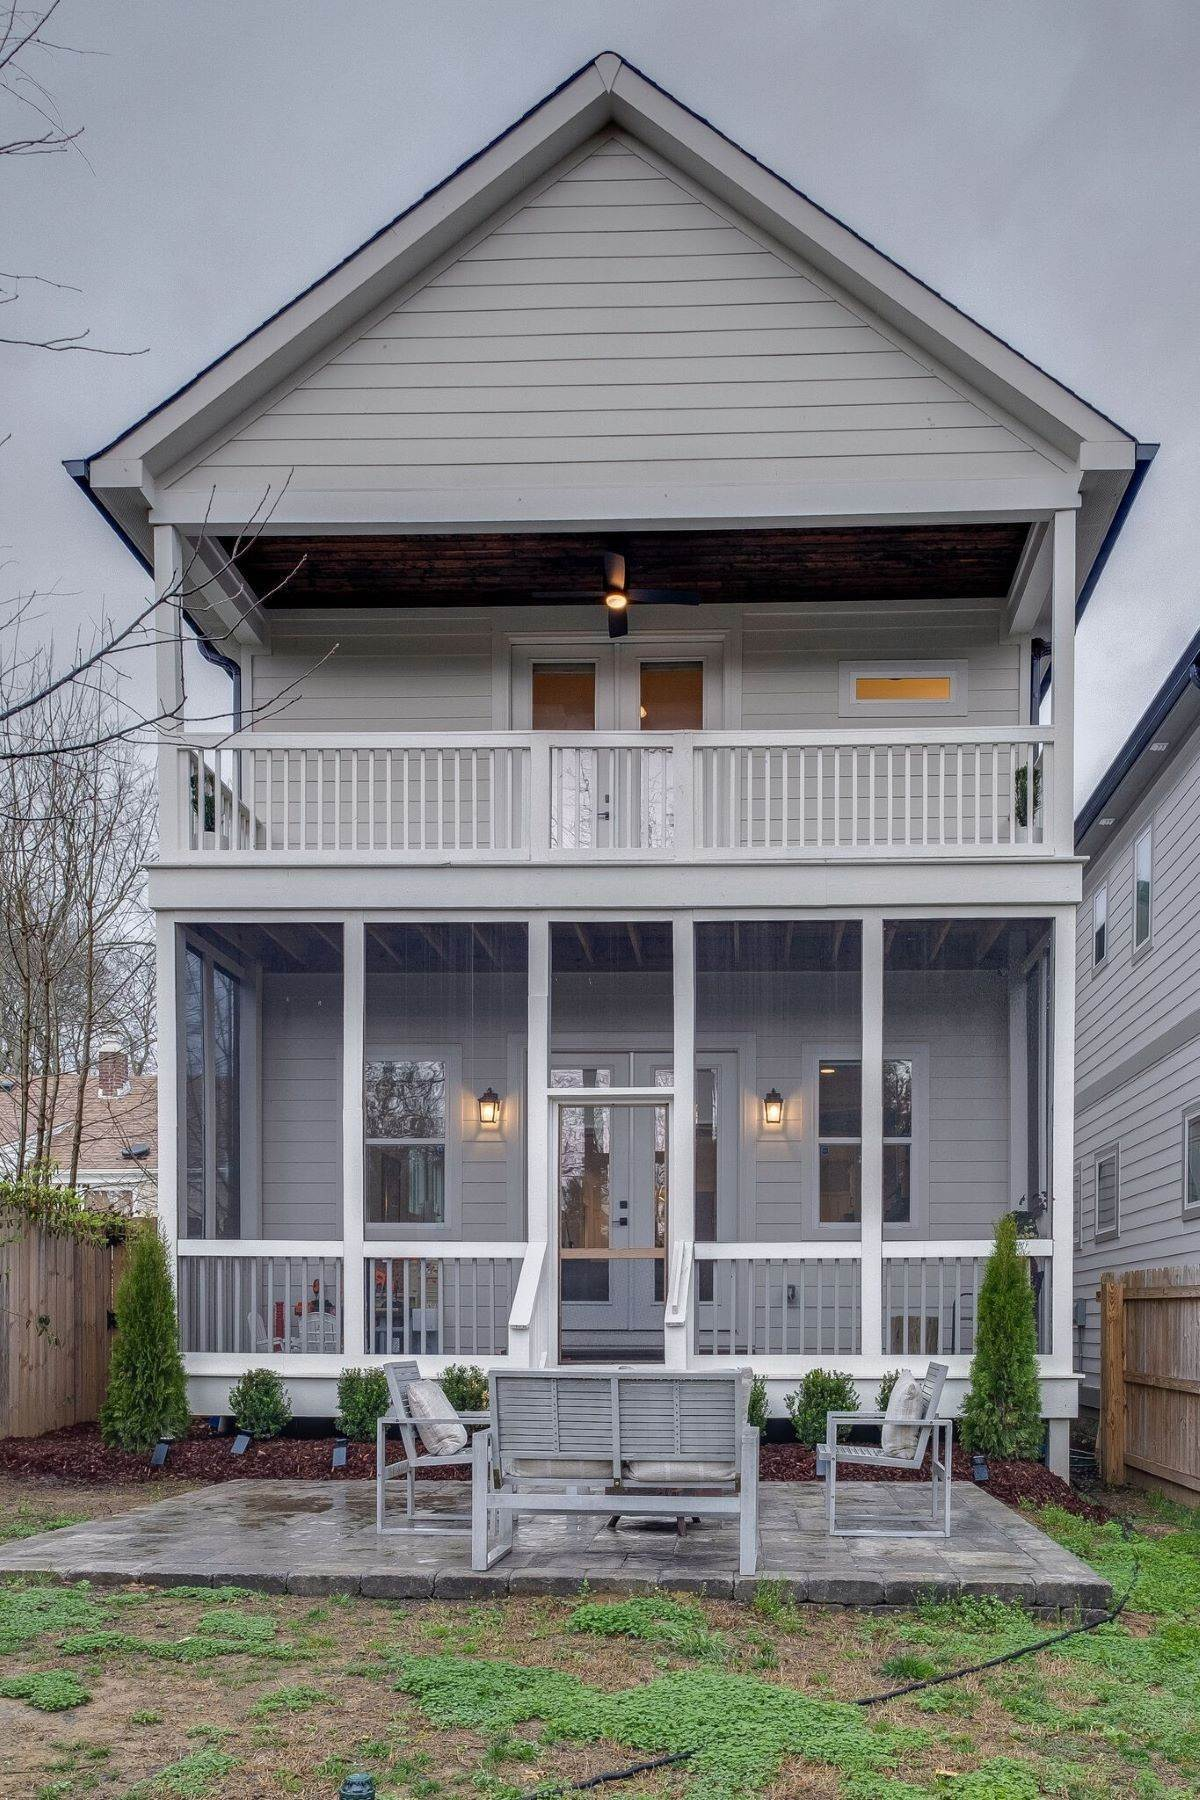 30. Single Family Homes for Sale at 408 Scott Avenue, Nashville, TN 37206 408 Scott Avenue, #A Nashville, Tennessee 37206 United States